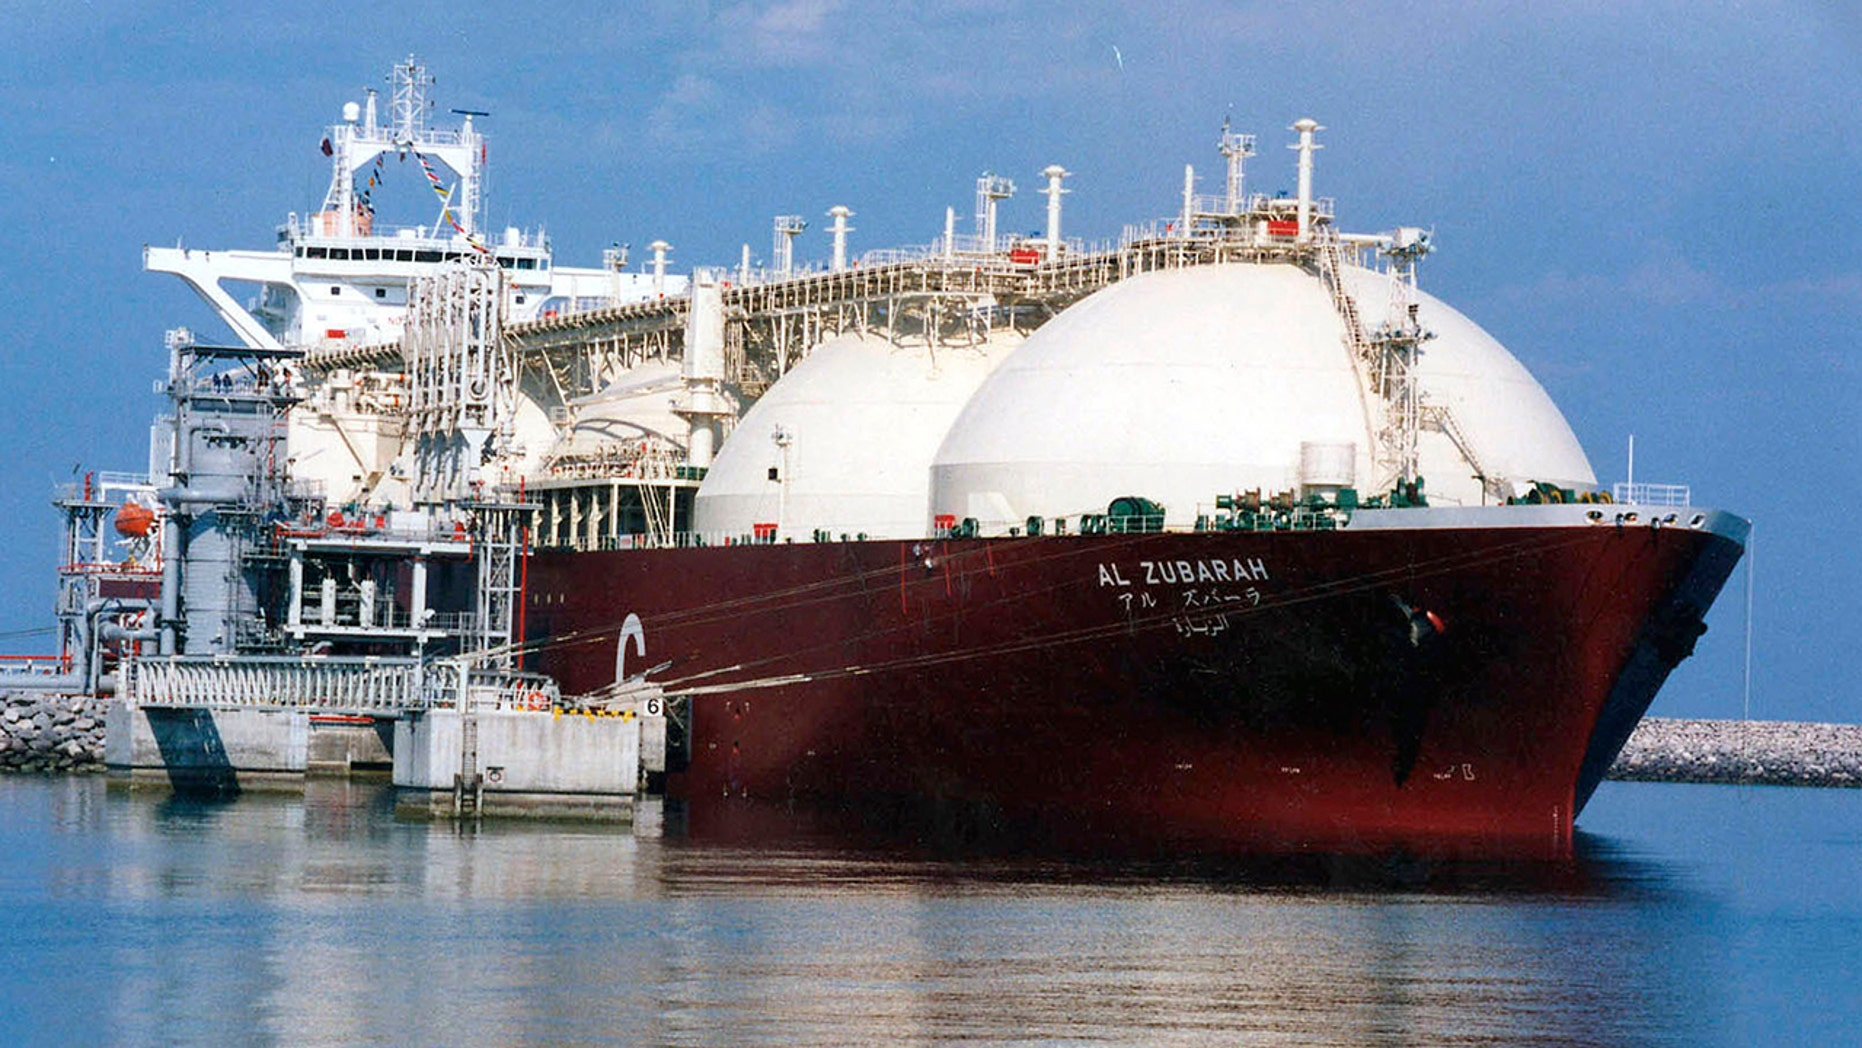 This undated file photo shows a Qatari liquid natural gas (LNG) tanker ship being loaded up with LNG at Raslaffans Sea Port, northern Qatar. (AP Photo, File)